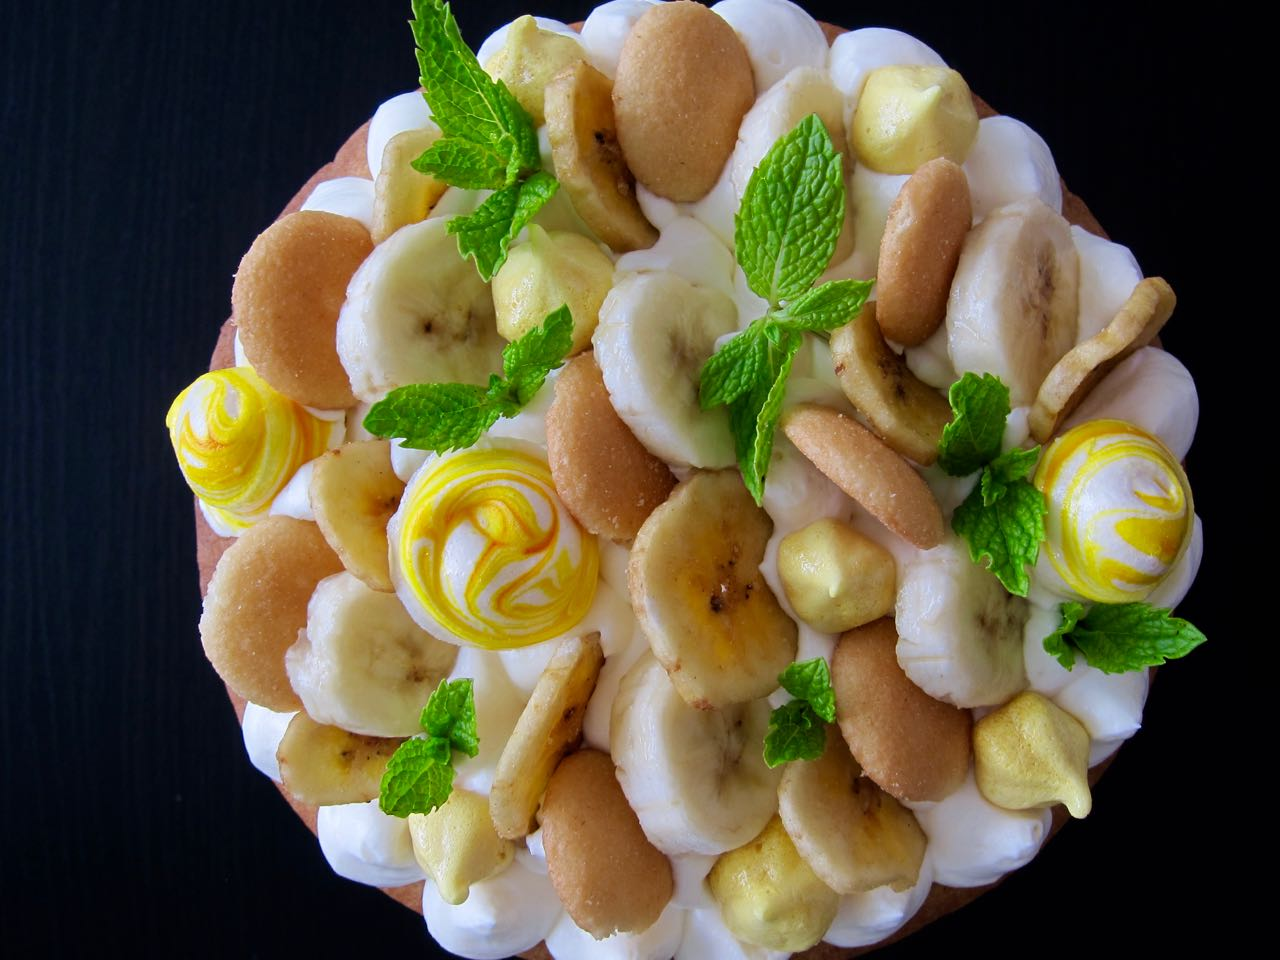 Decorated Banana Pudding Cream Tart